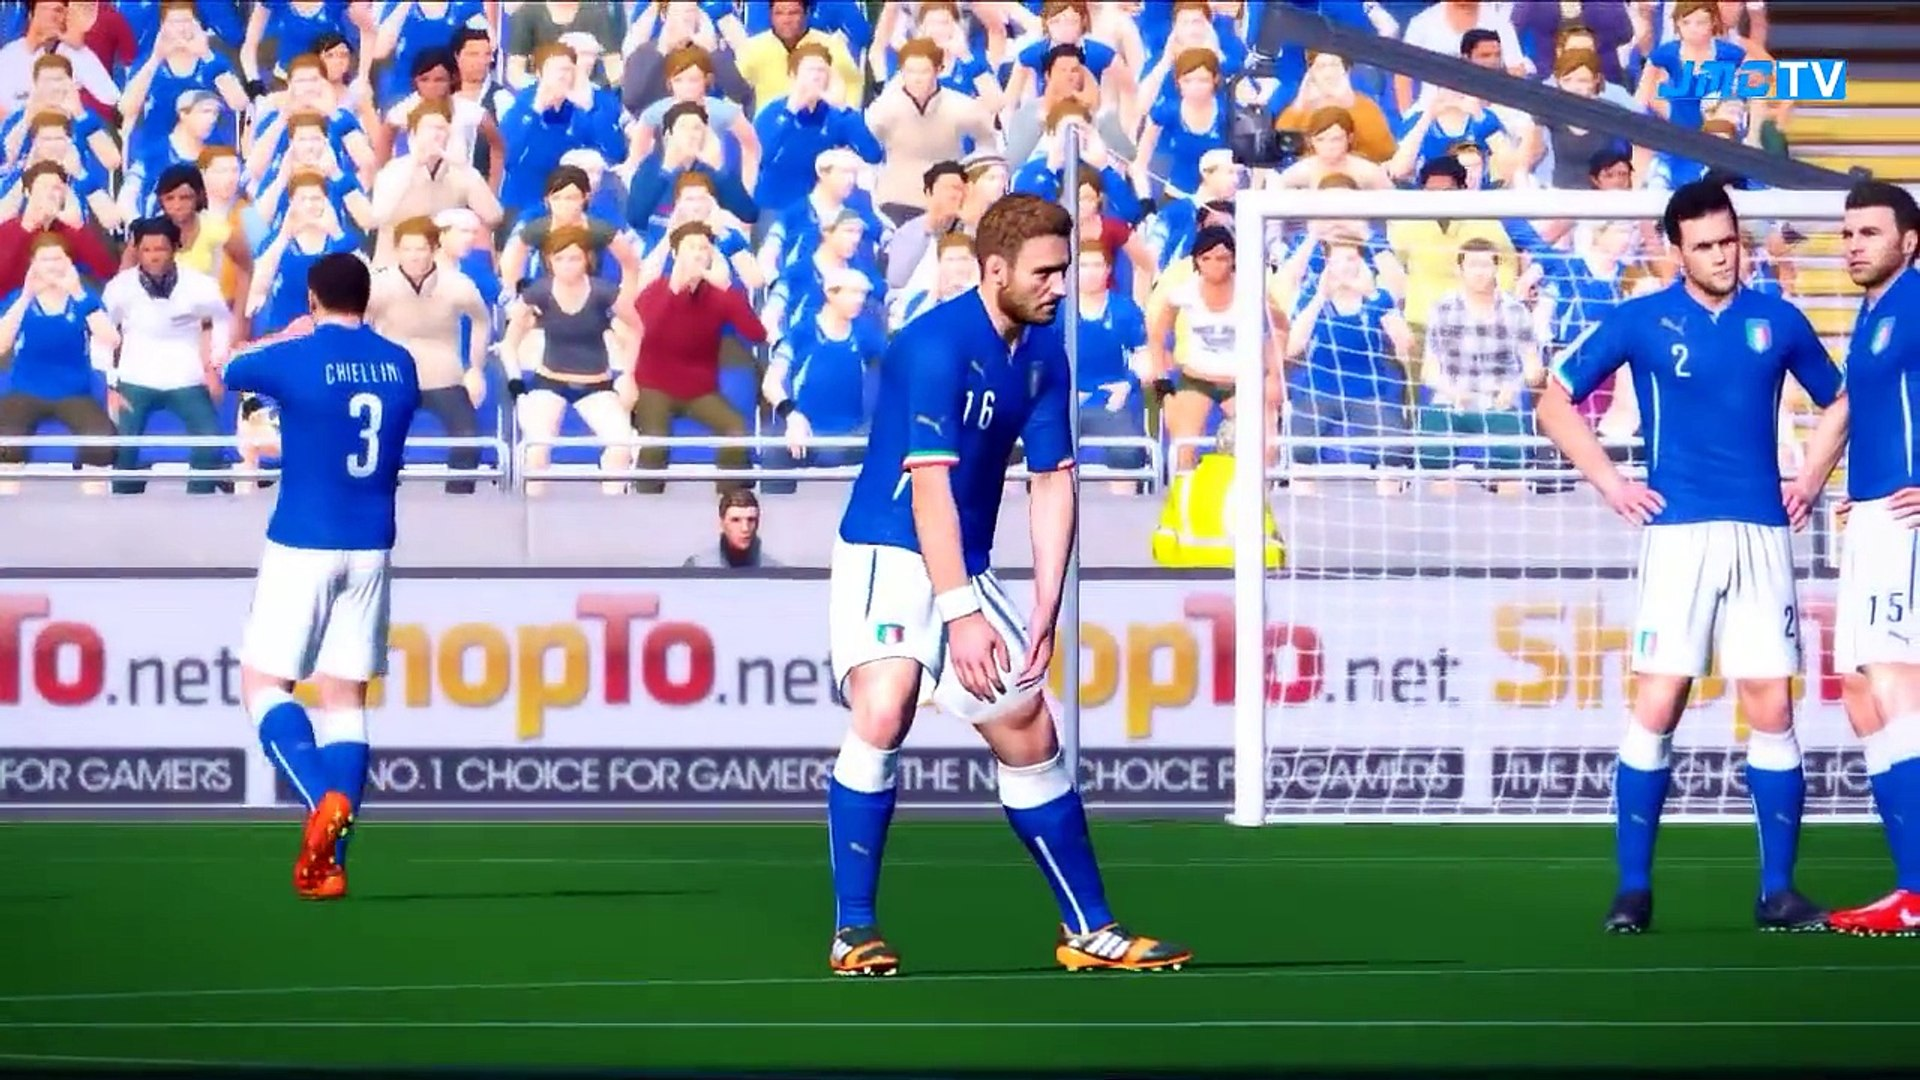 Italy vs. England | 2014 FIFA World Cup Brazil Simulation | Pro Evolution Soccer 2014 (PES 2014)